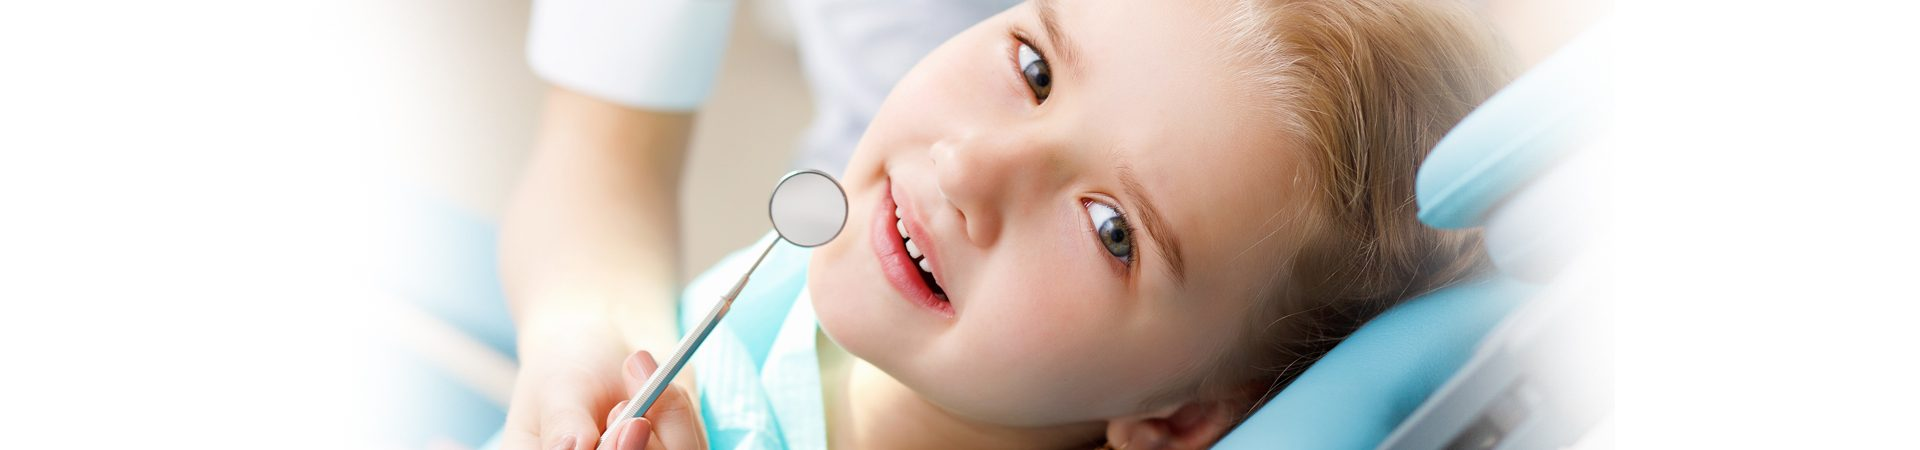 Should Children Get Dental Sealant on Their Teeth